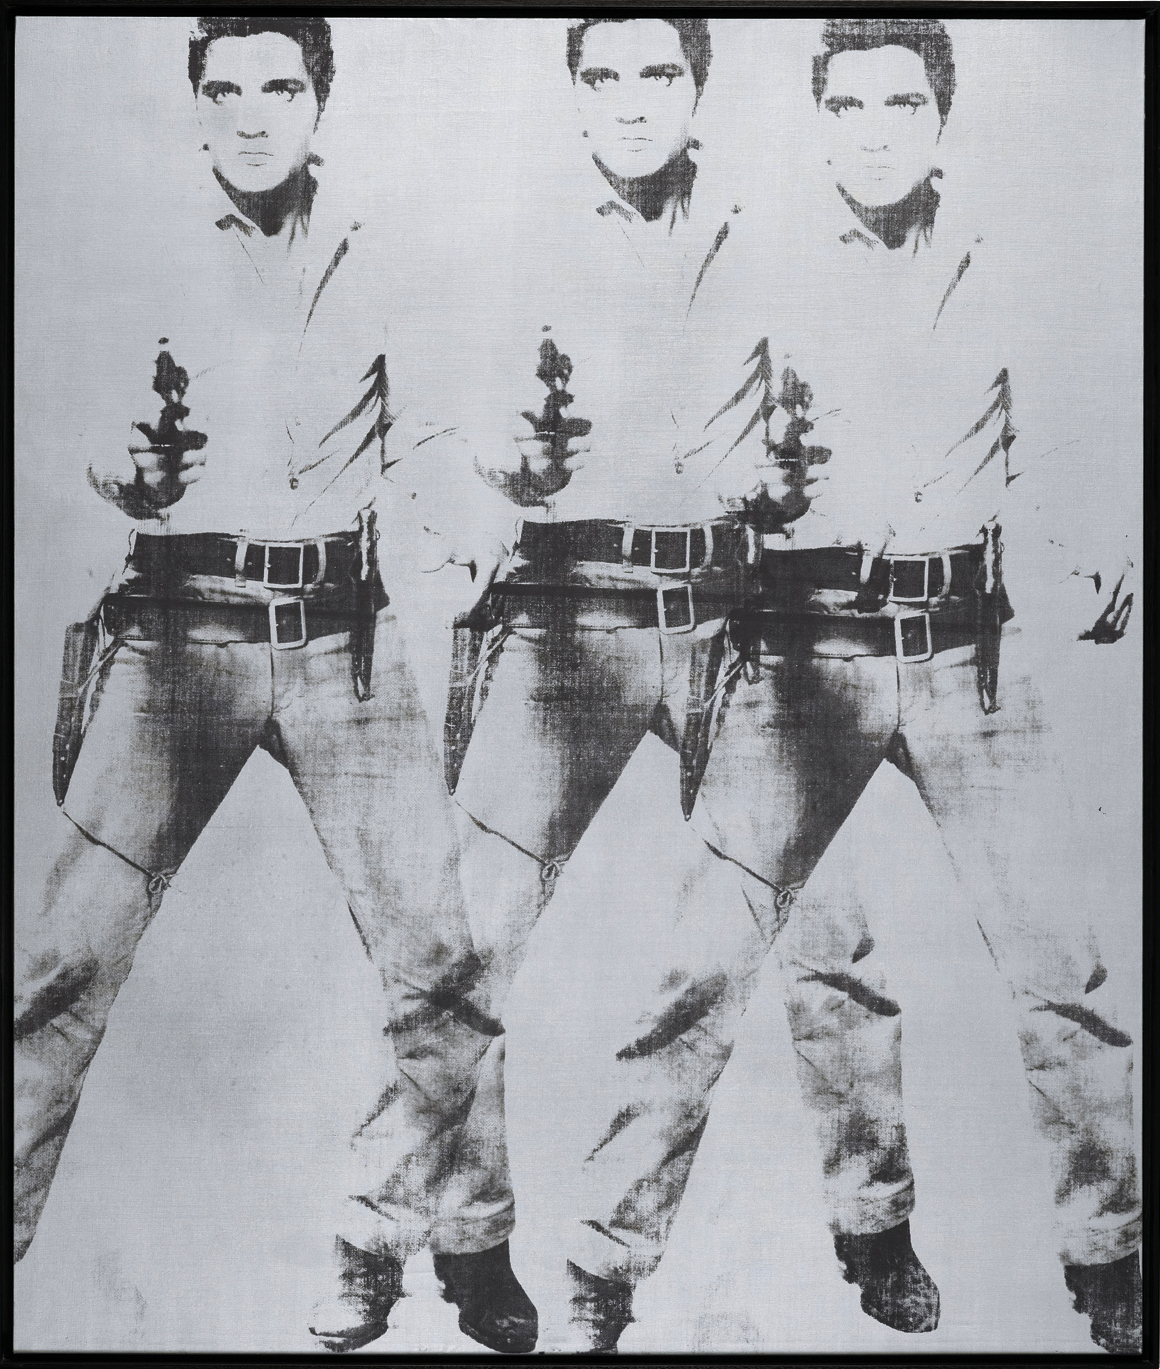 """Andy Warhol's """"Triple Elvis (Ferus Type)"""" (1963) sold for $81.9M. (The Andy Warhol Foundation for the Visual Arts / Artists Rights Society (ARS), New York)"""